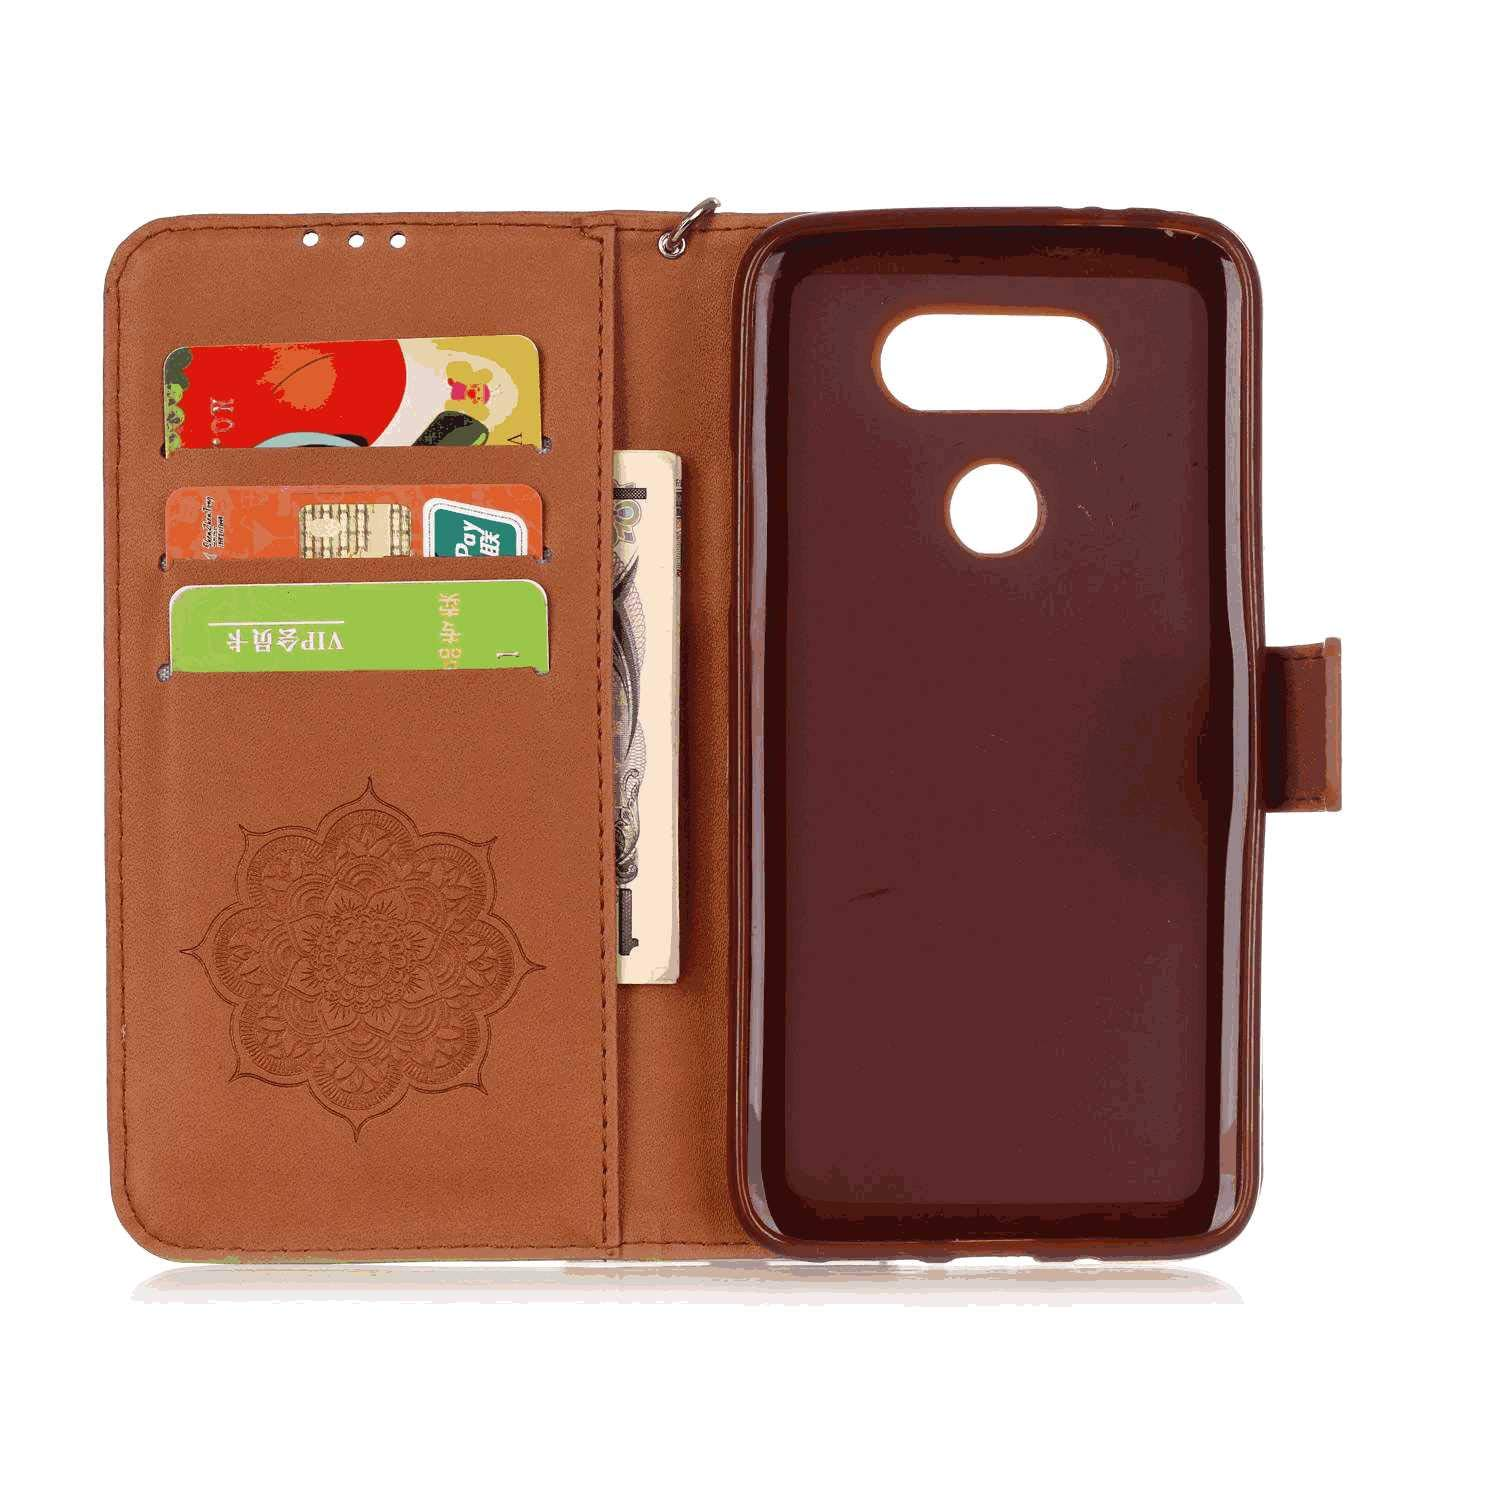 Linear Roller Bearings Cover for Samsung Galaxy S10 Plus Leather ...